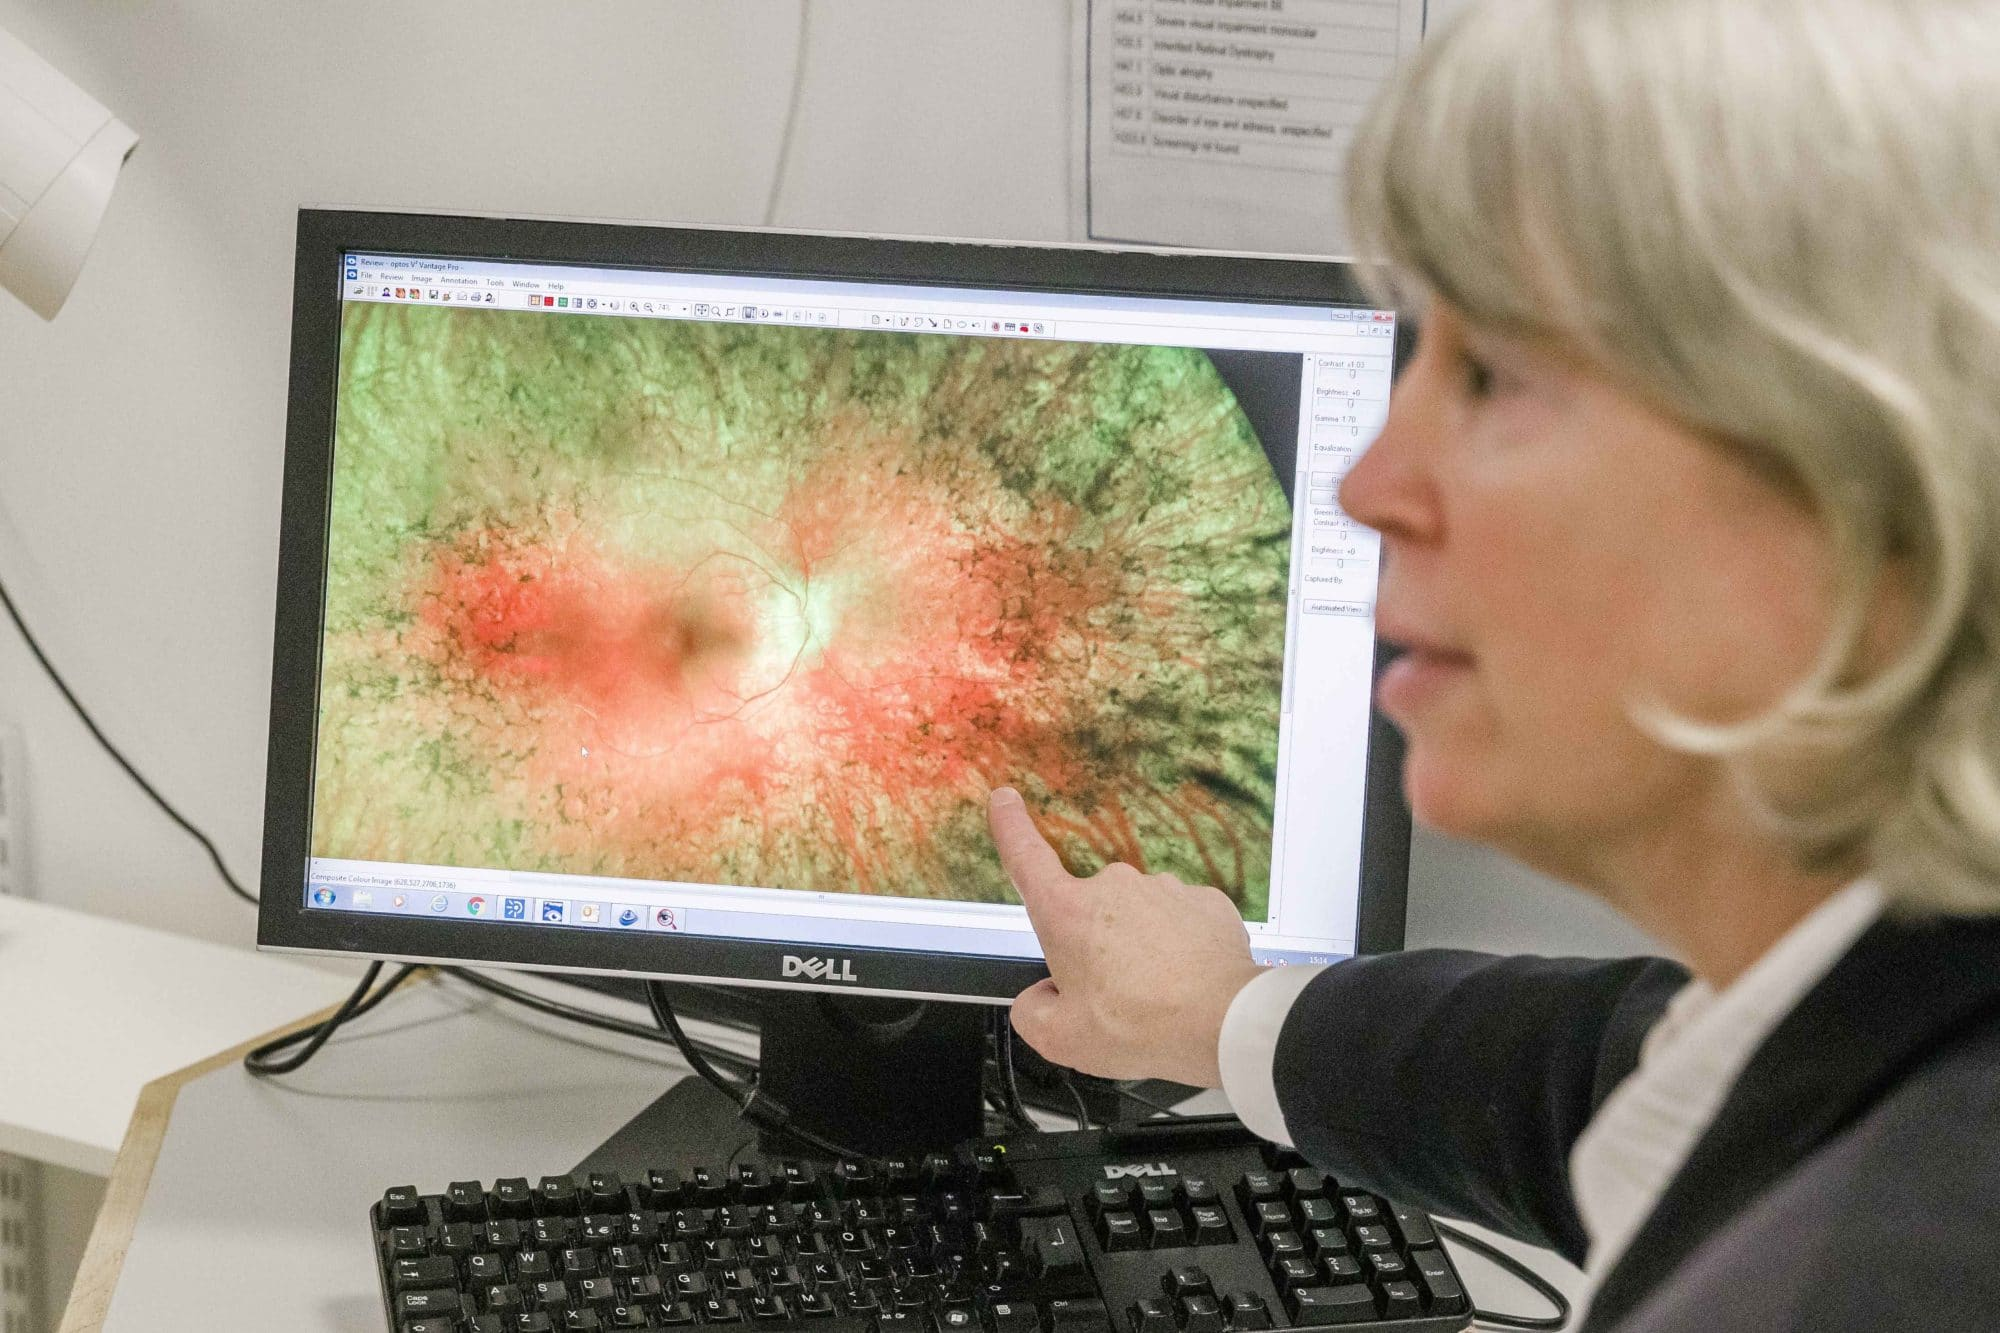 consultant pointing at image on fundus on computer